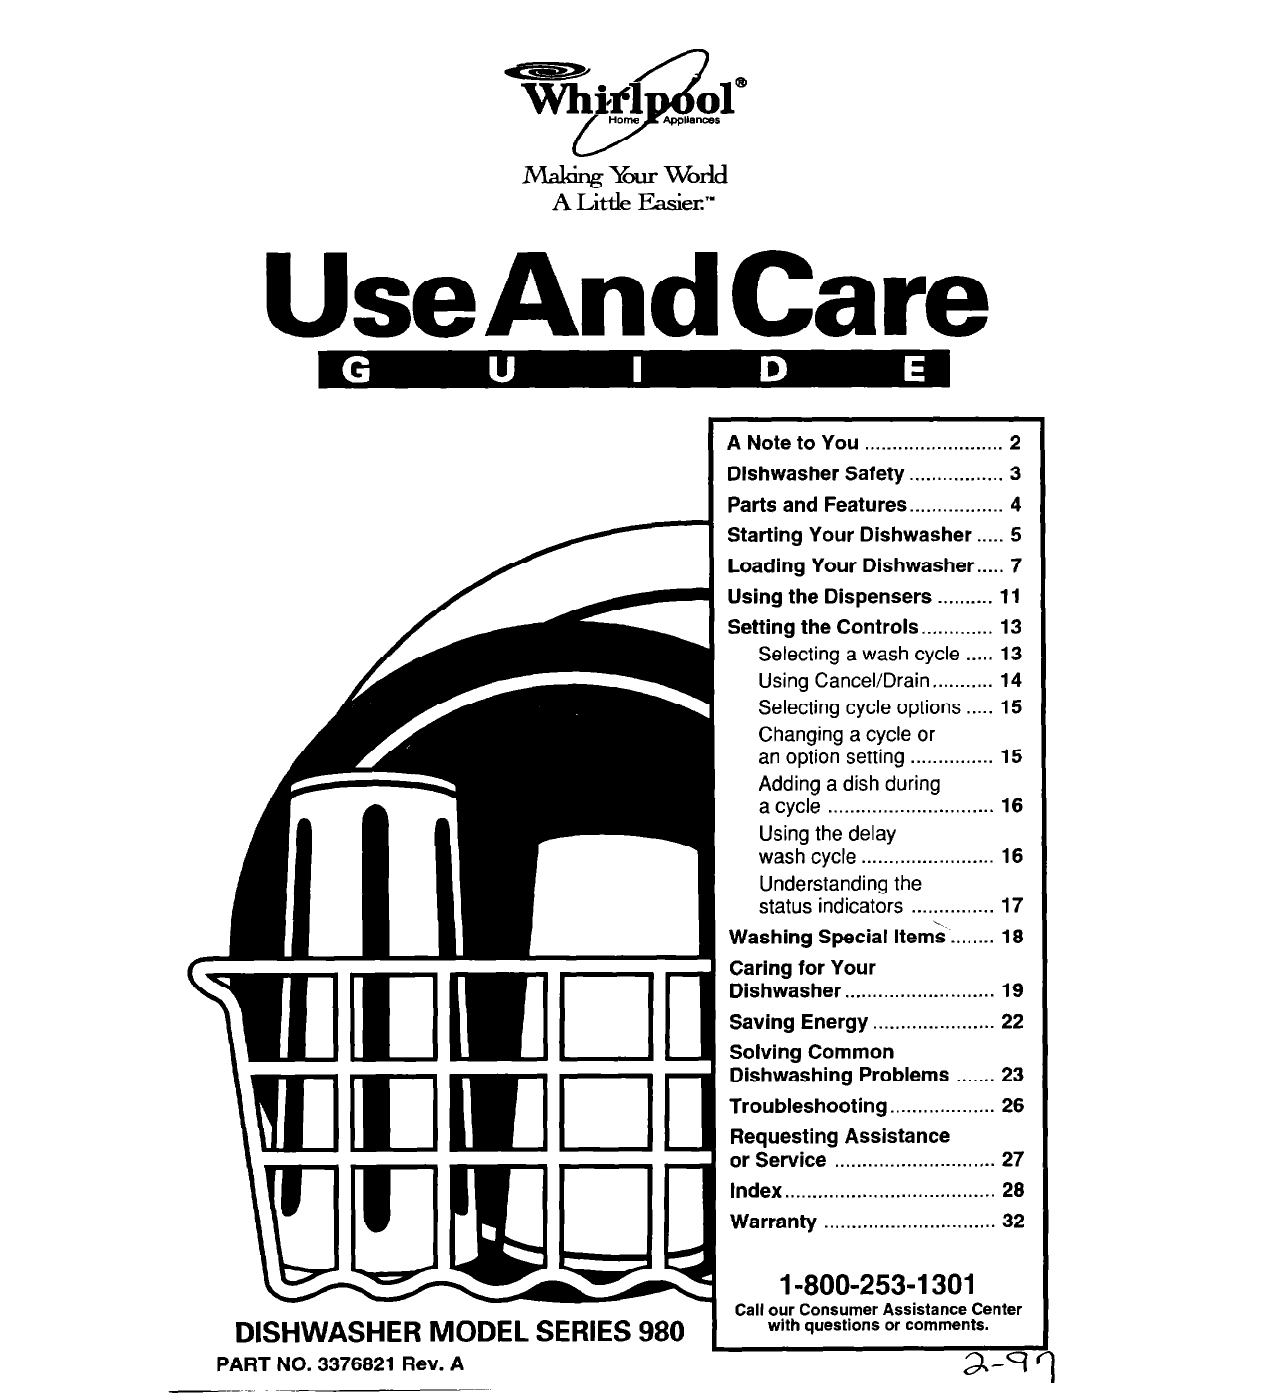 whirlpool dishwasher series 980 user guide